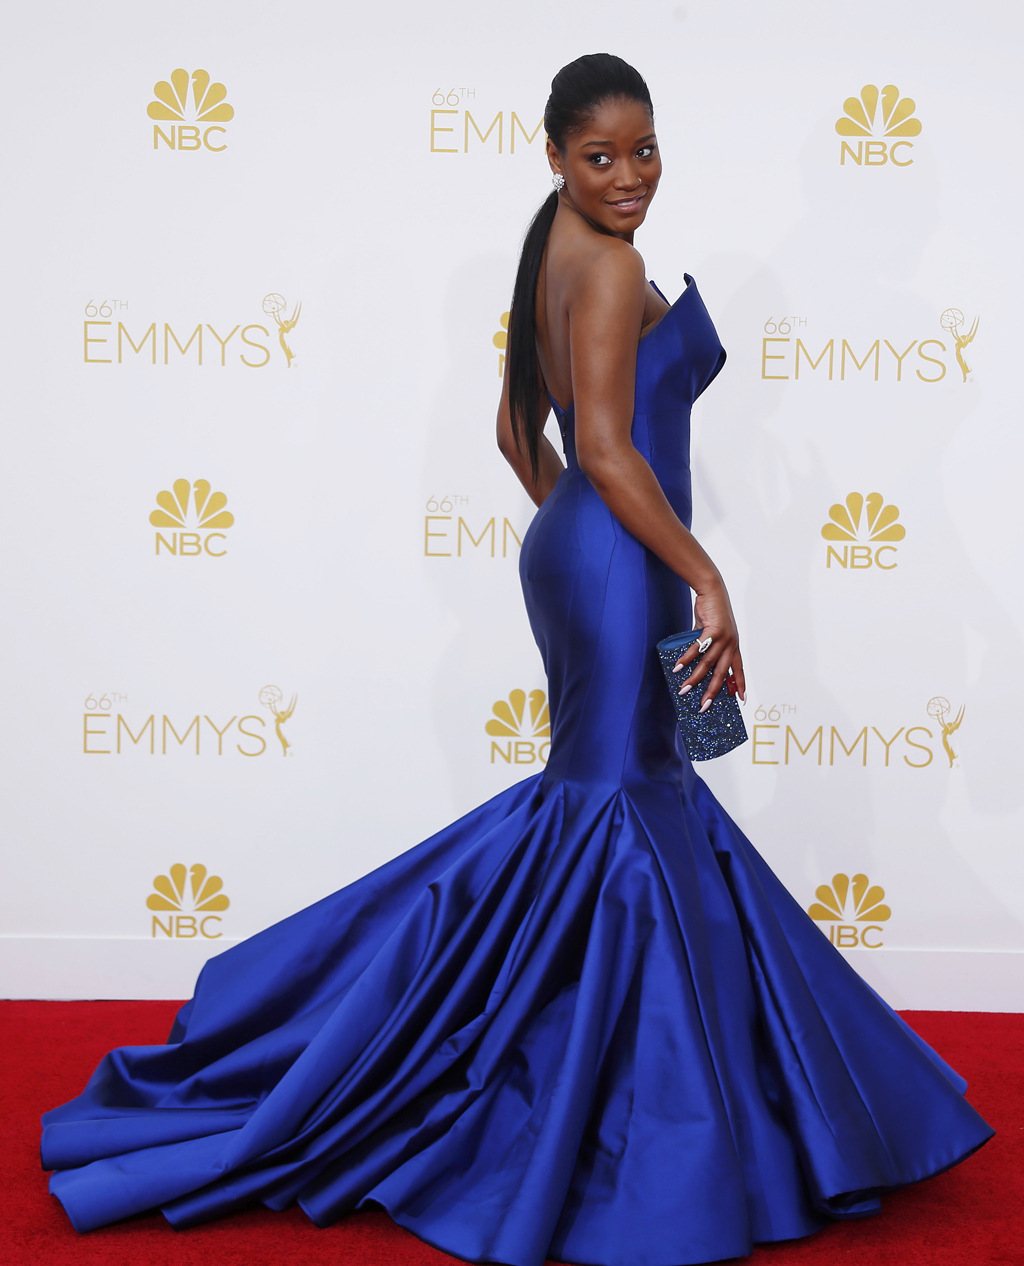 Keke Palmer arrives at the 66th Primetime Emmy Awards in Los Angeles